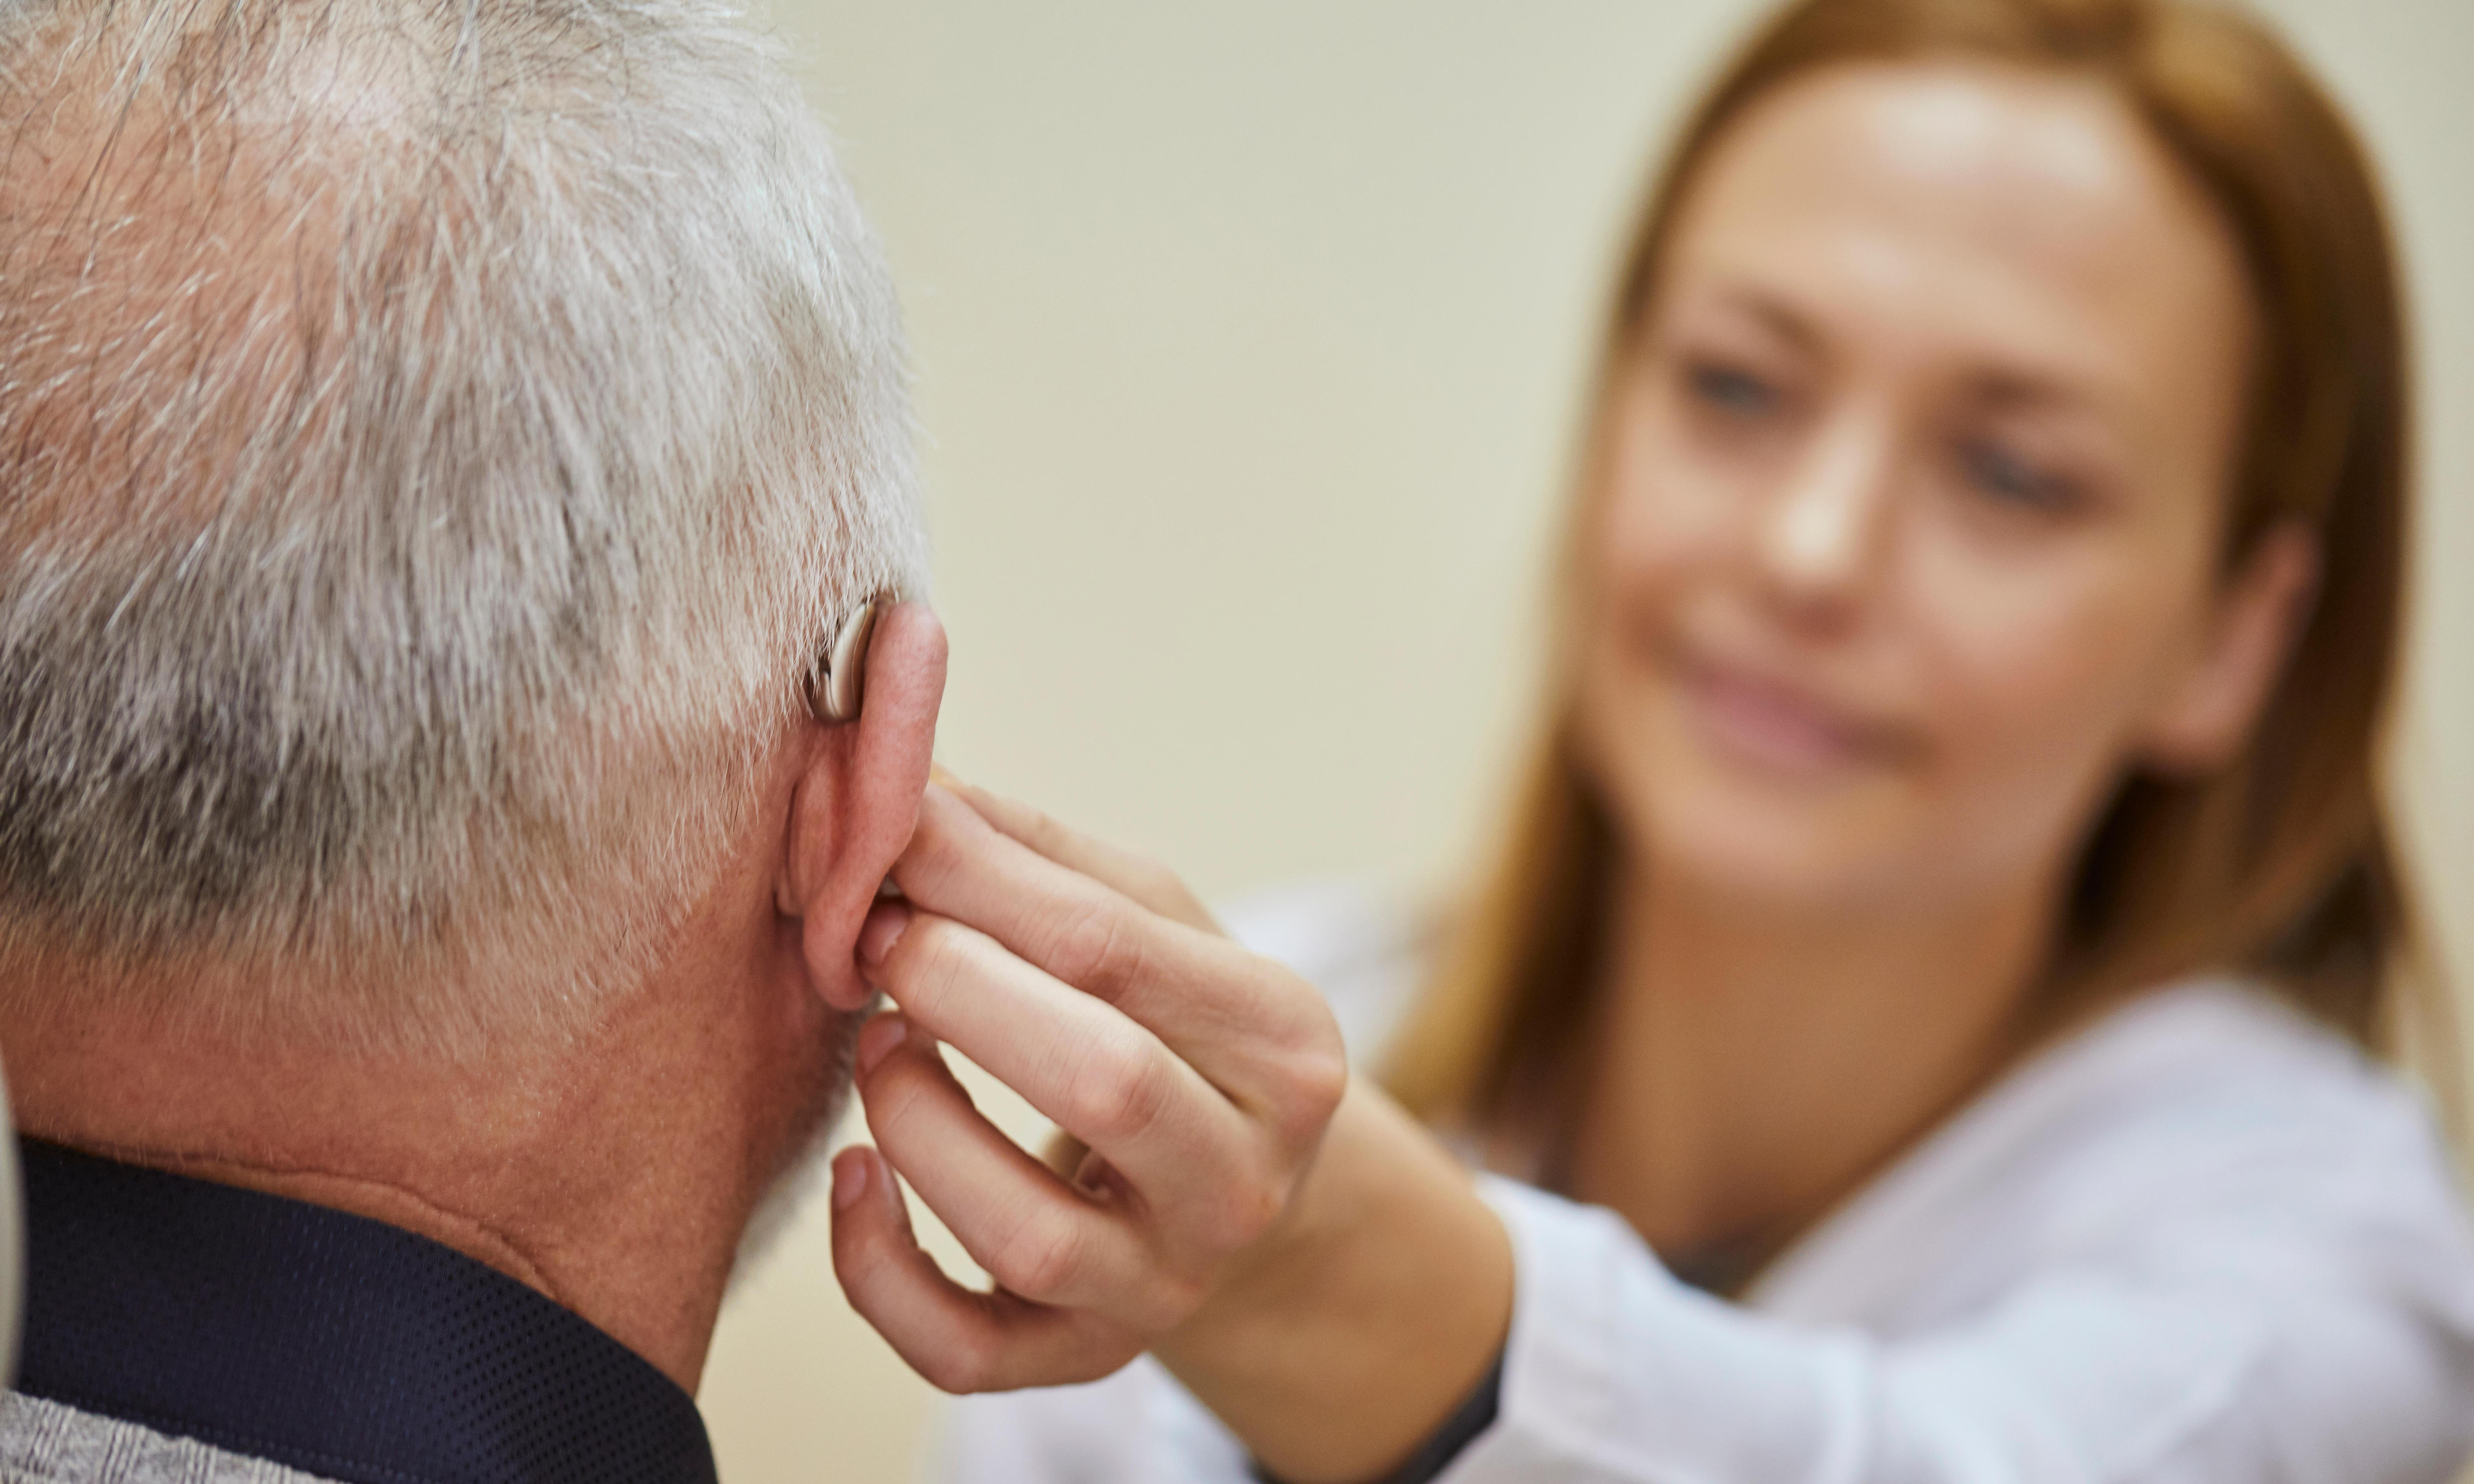 Hearing aids: is going private really better than the NHS?